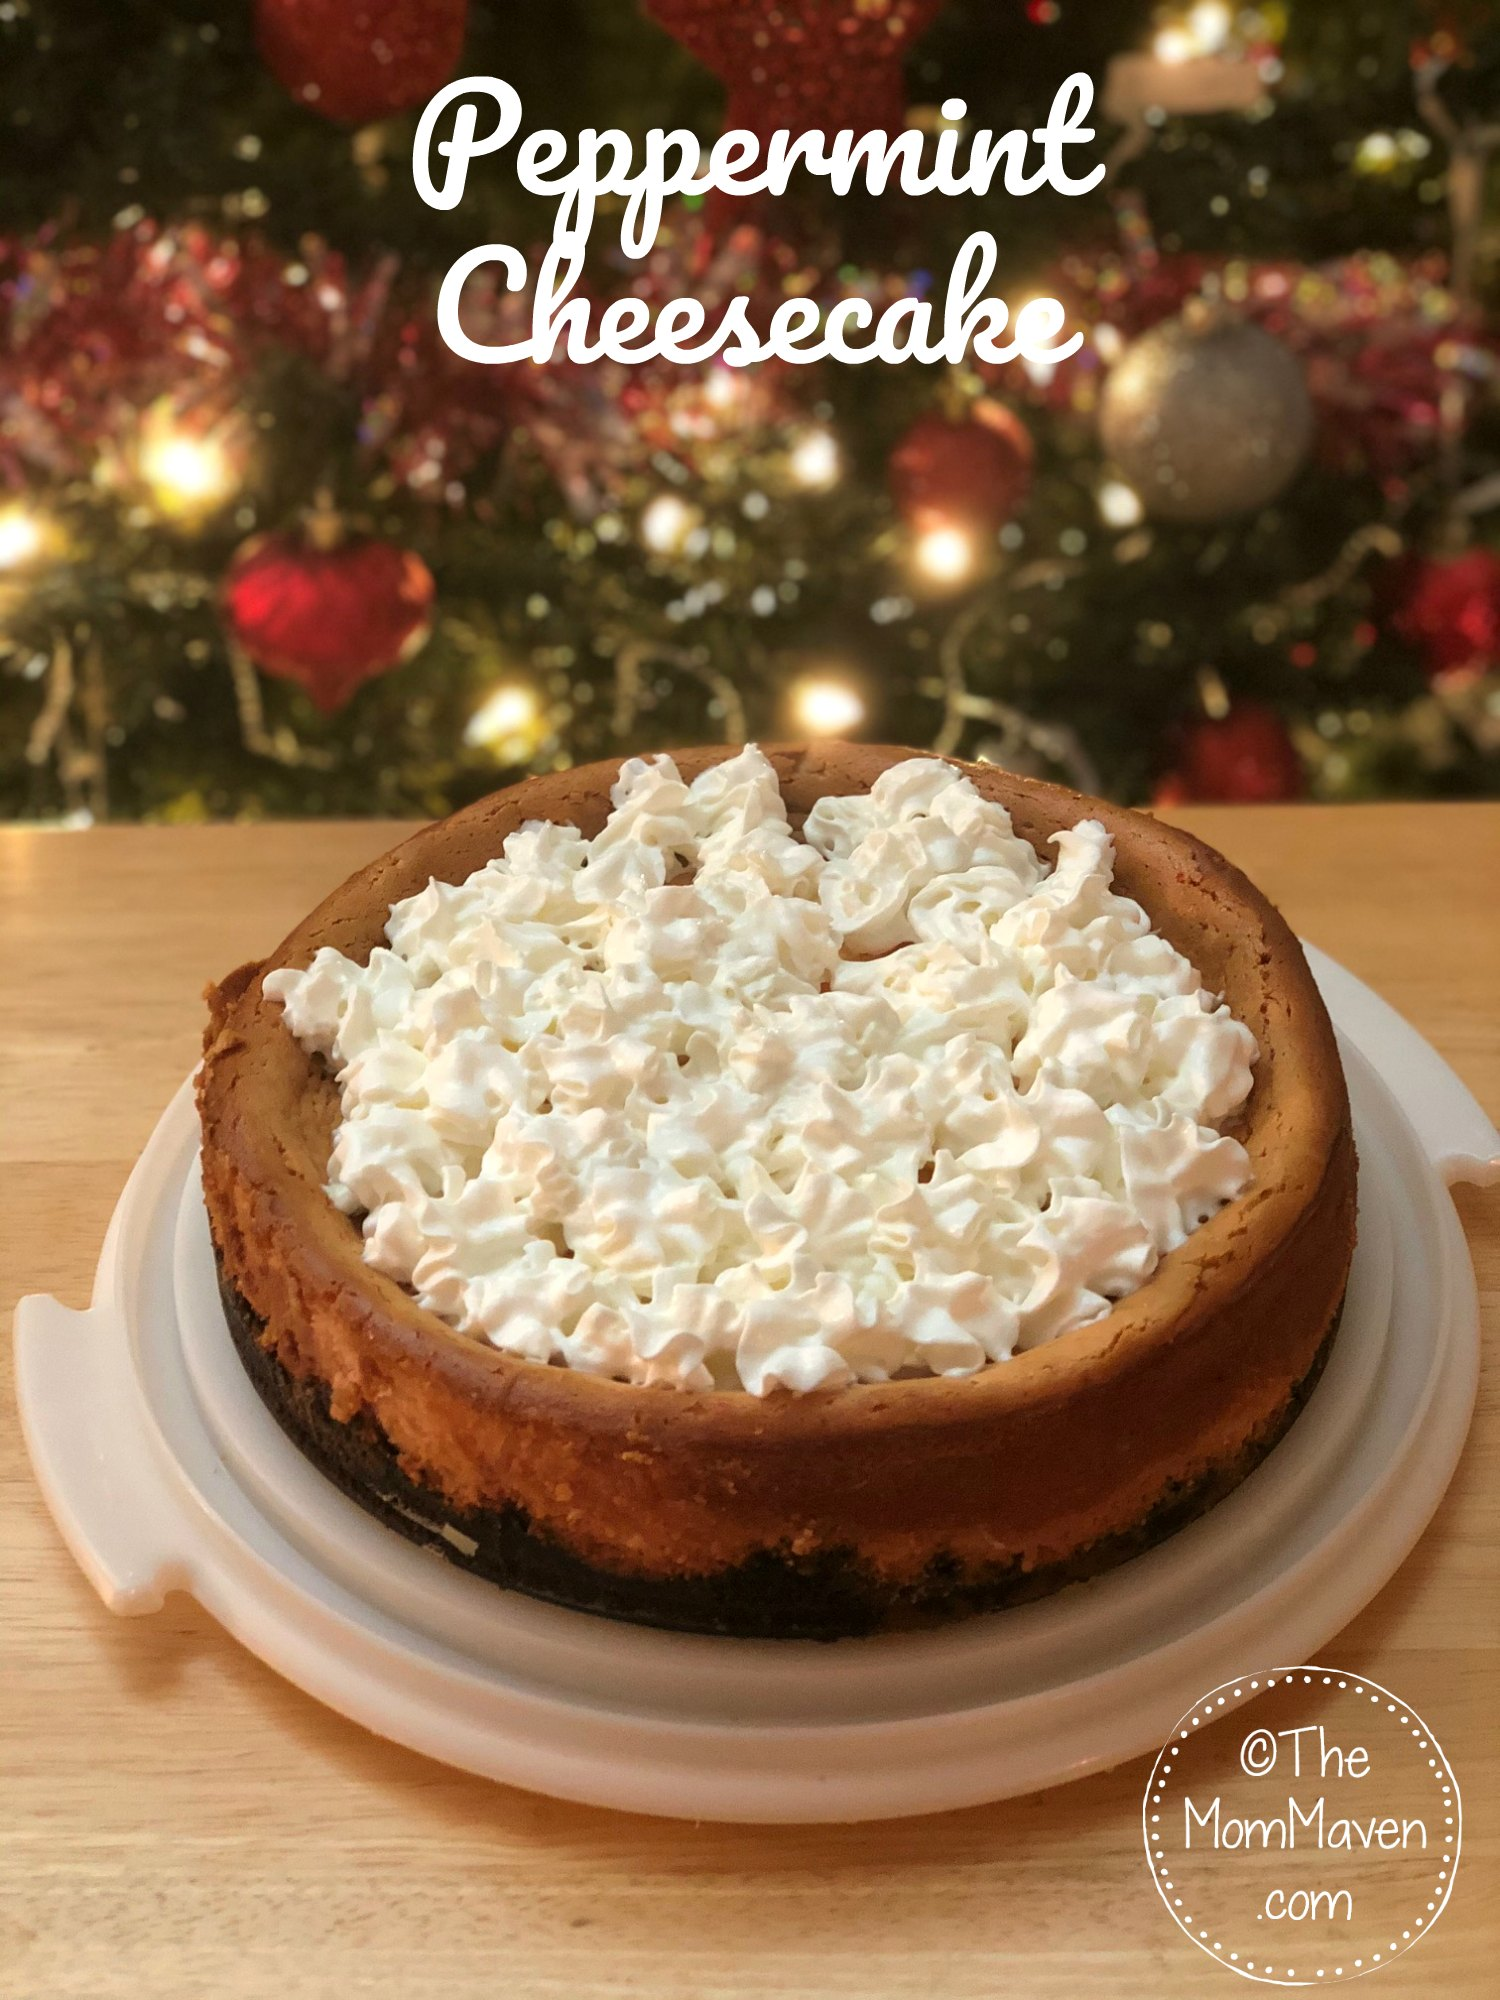 Perfect for any Christmas celebration, this Peppermint Cheesecake recipe has a chocolate graham cracker crust, crushed candy canes in the cheesecake layer, and is topped with whipped cream.